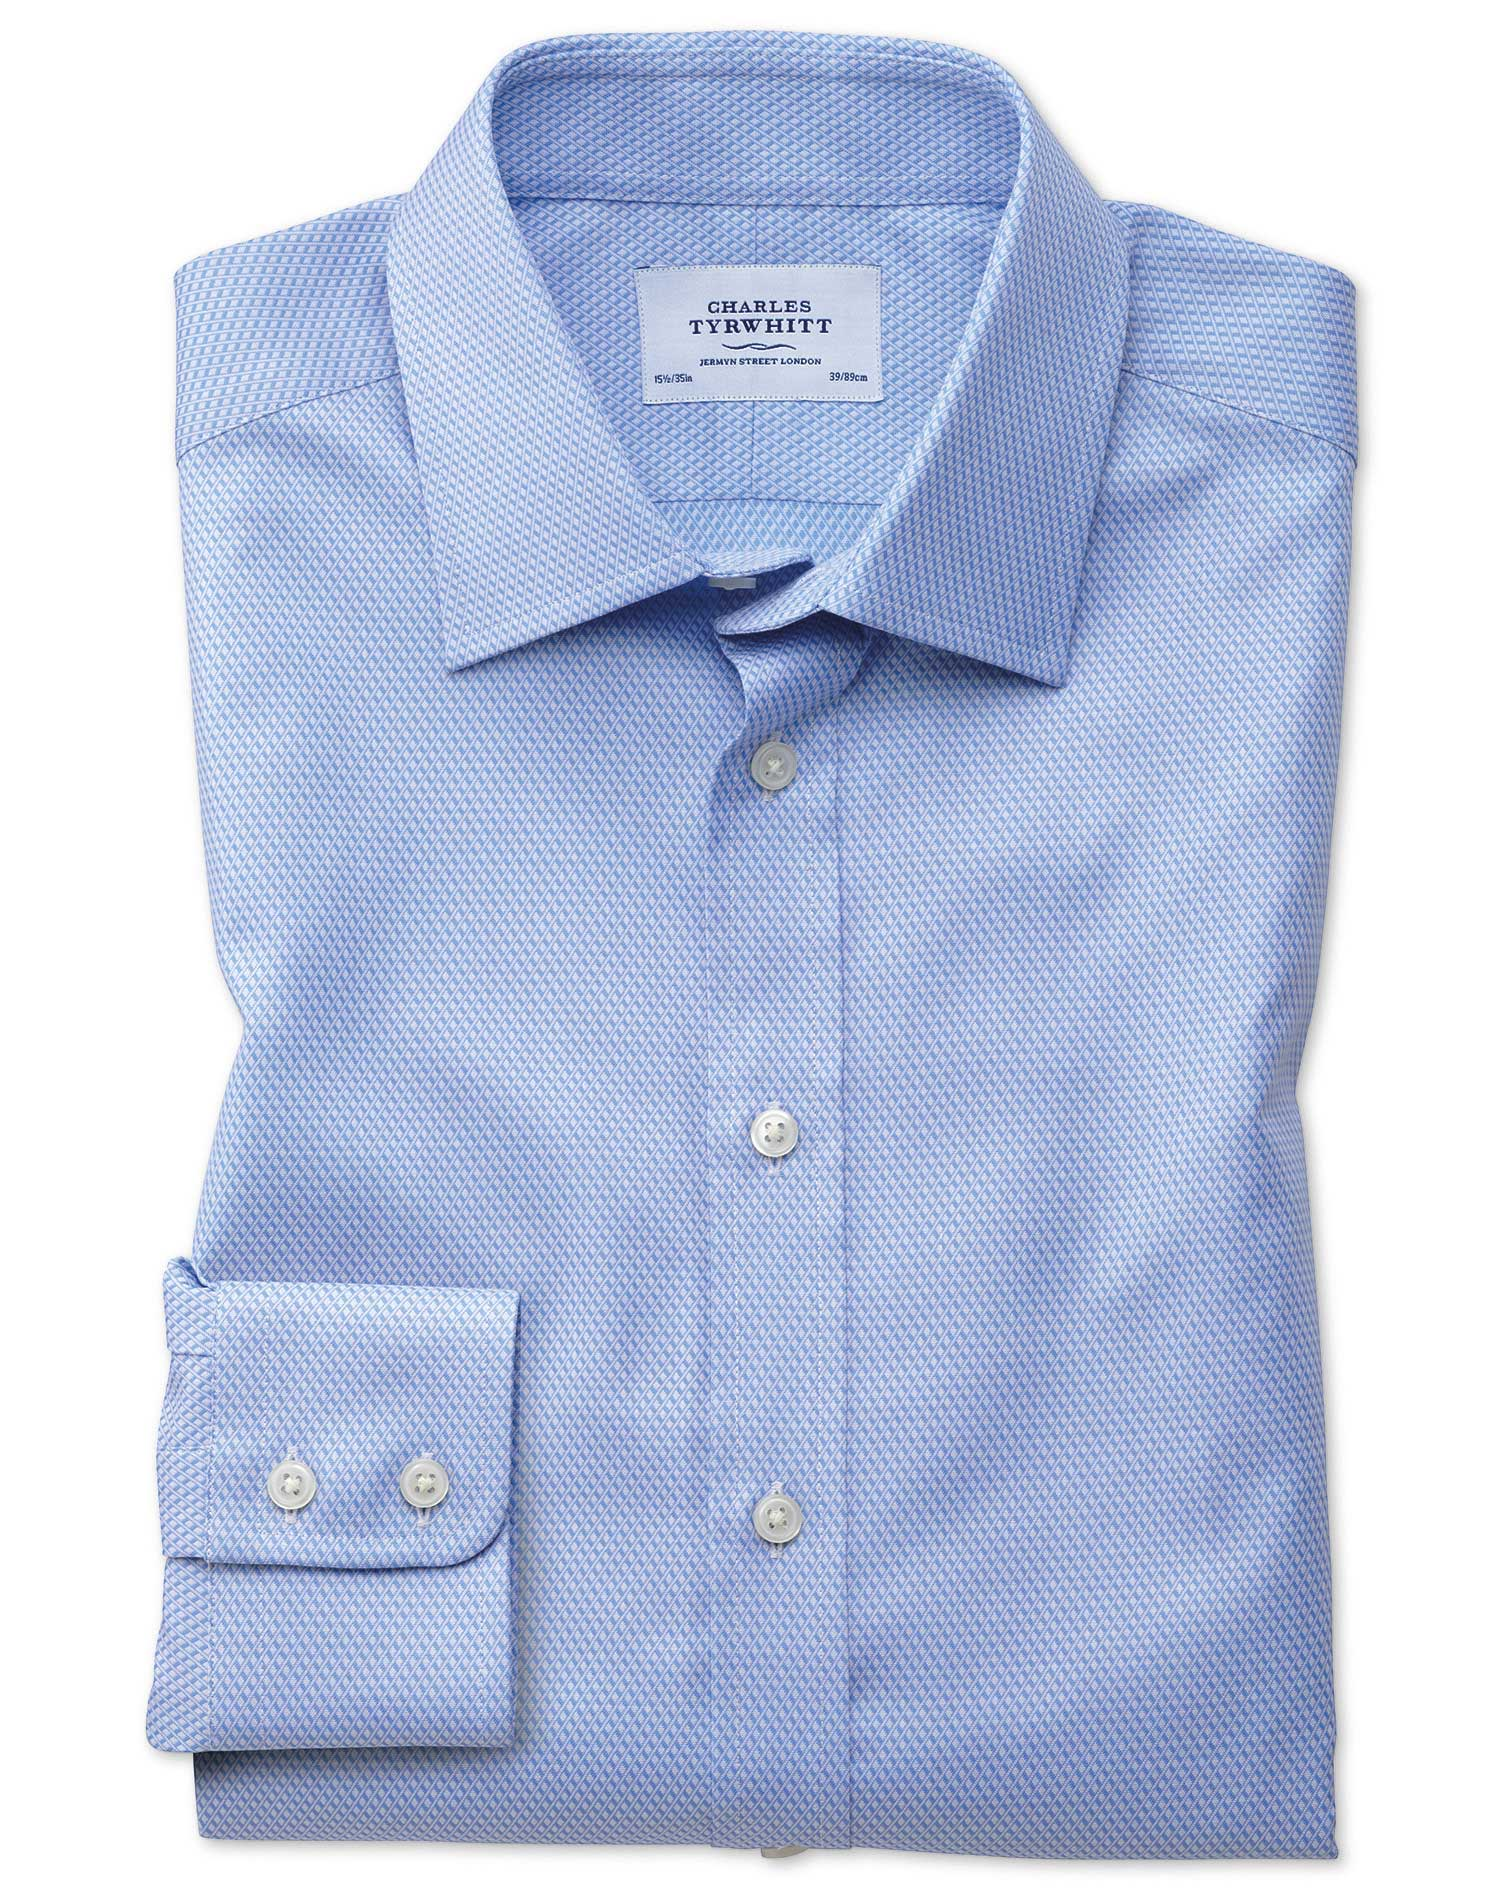 Classic Fit Egyptian Cotton Diamond Pattern Sky Blue Formal Shirt Single Cuff Size 18/36 by Charles